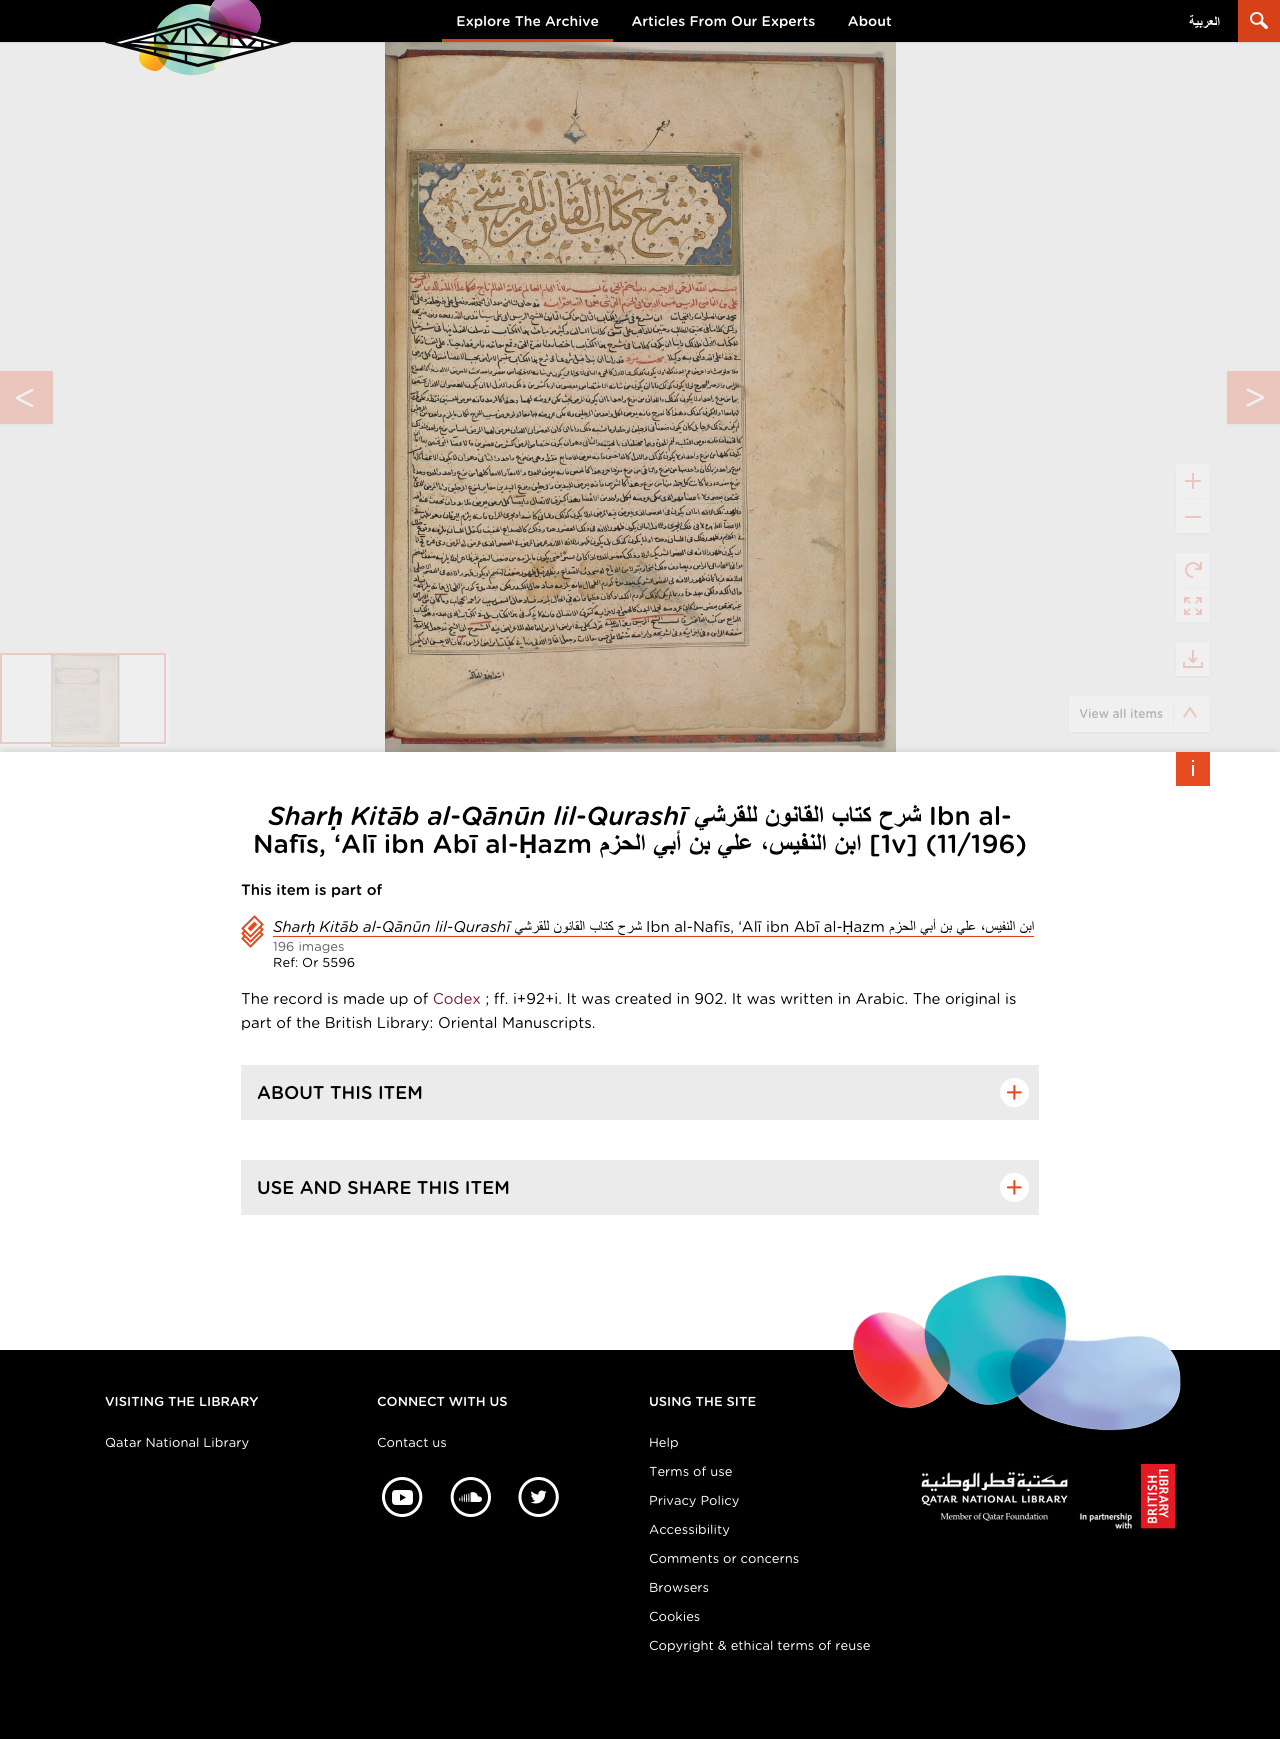 Image viewer: Arabic manuscript created in 902